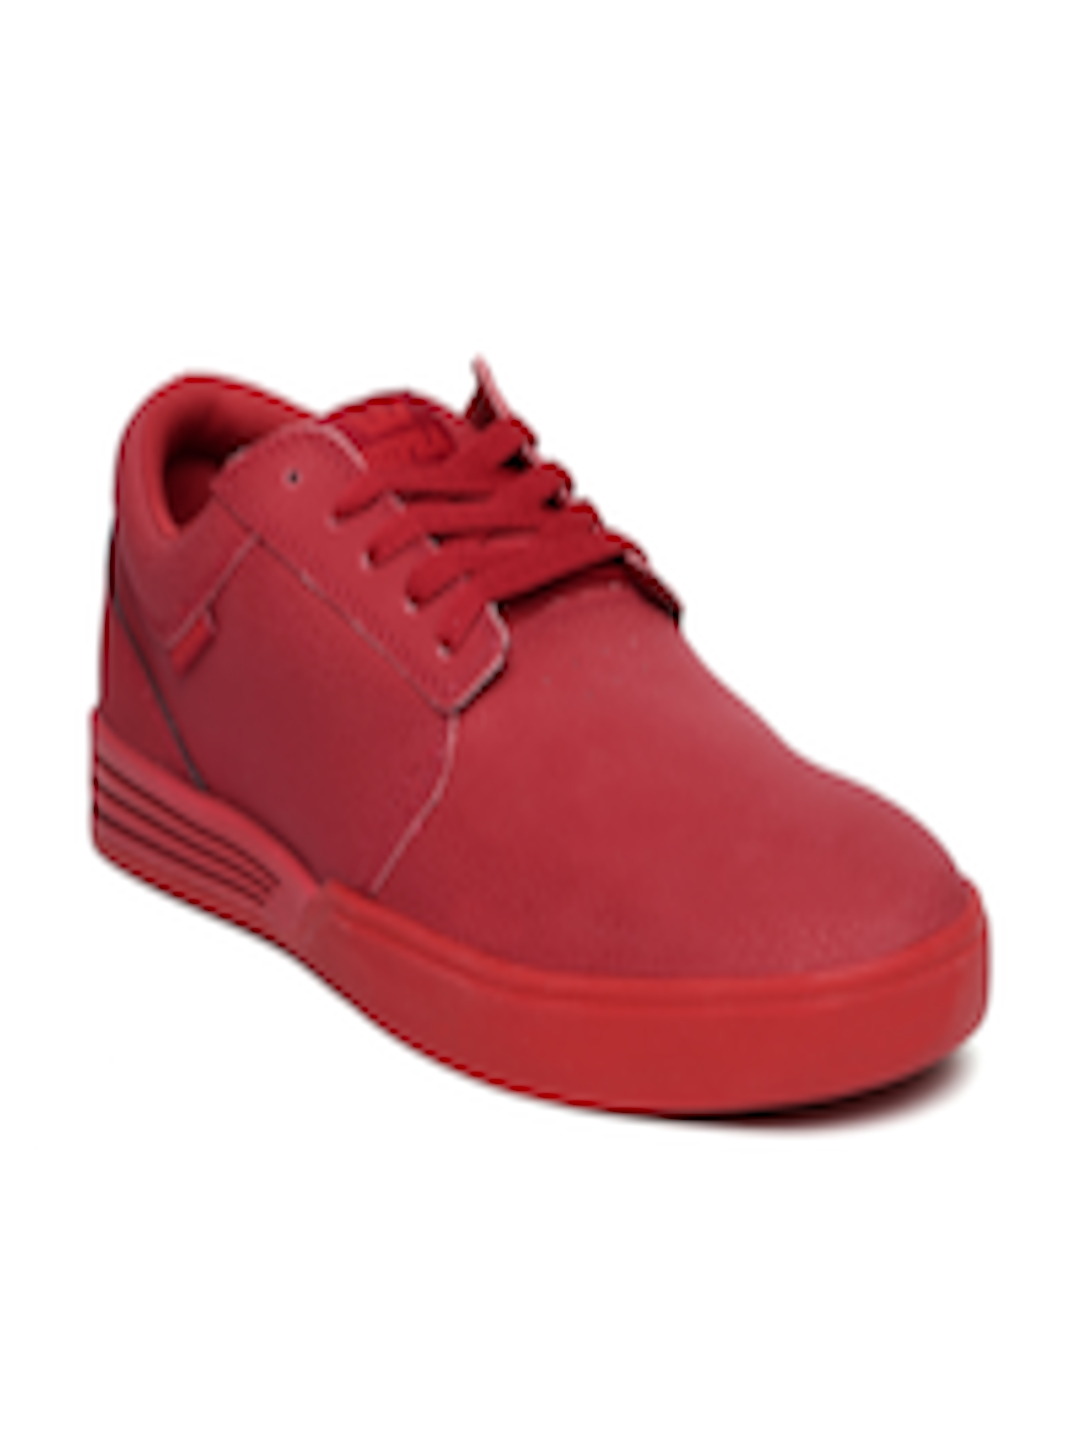 Supra Mens Hammer Red Red Skate Shoes